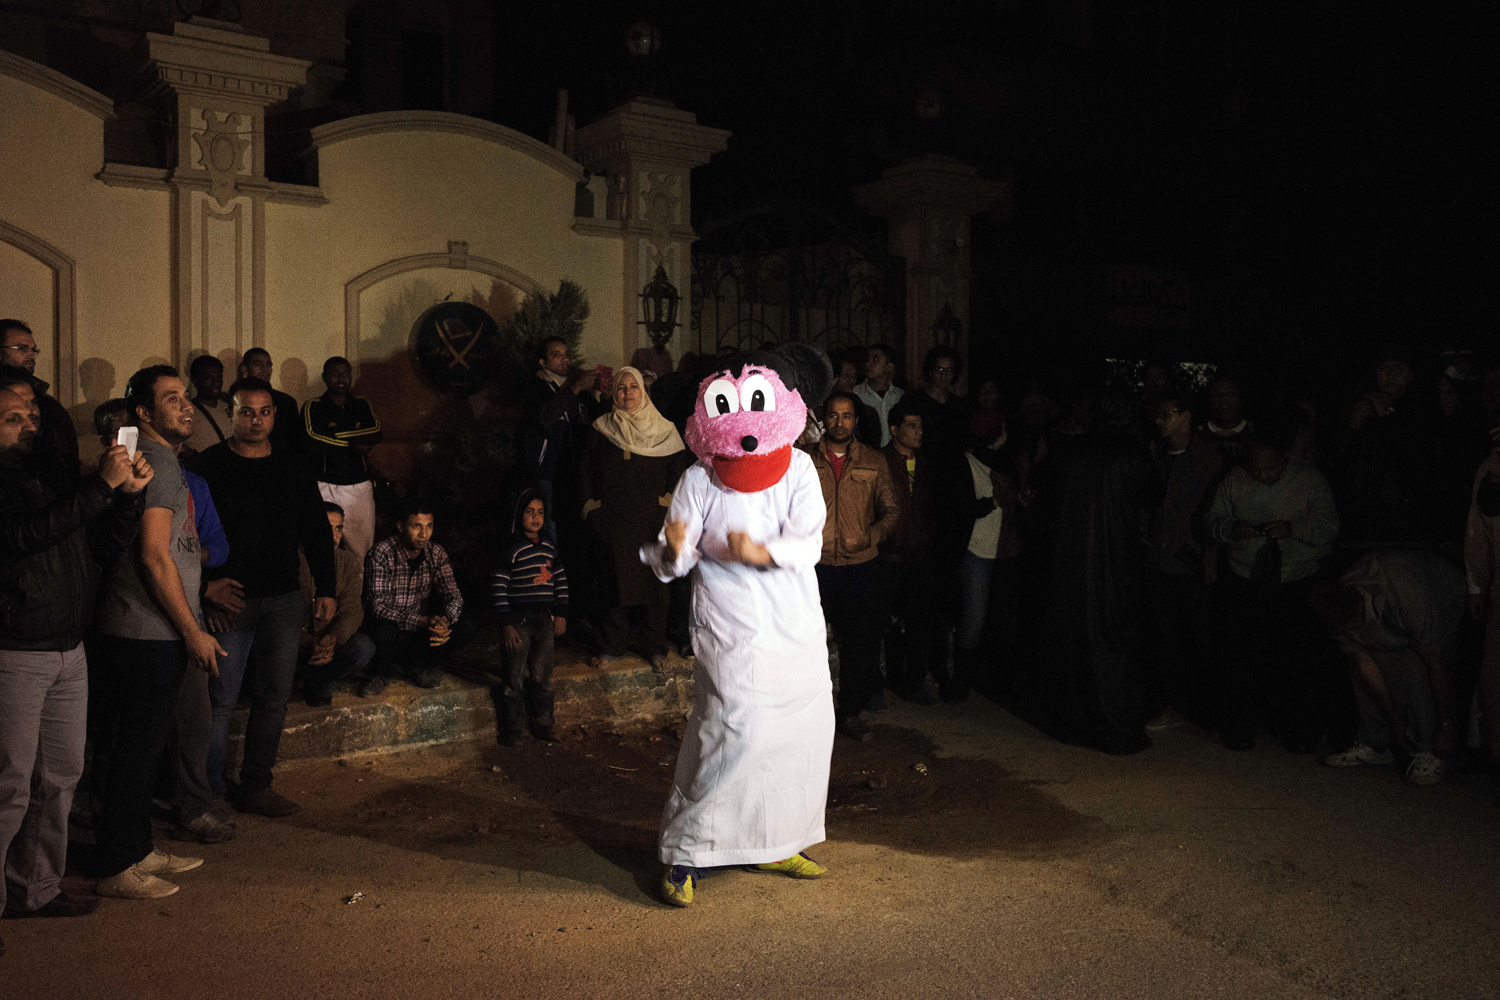 Feb. 28. 2013. Egyptian Actvists and youth perform the Internet craze, the  Harlem Shake  in front of the Muslim Brotherhood headquarters in Cairo, Egypt.